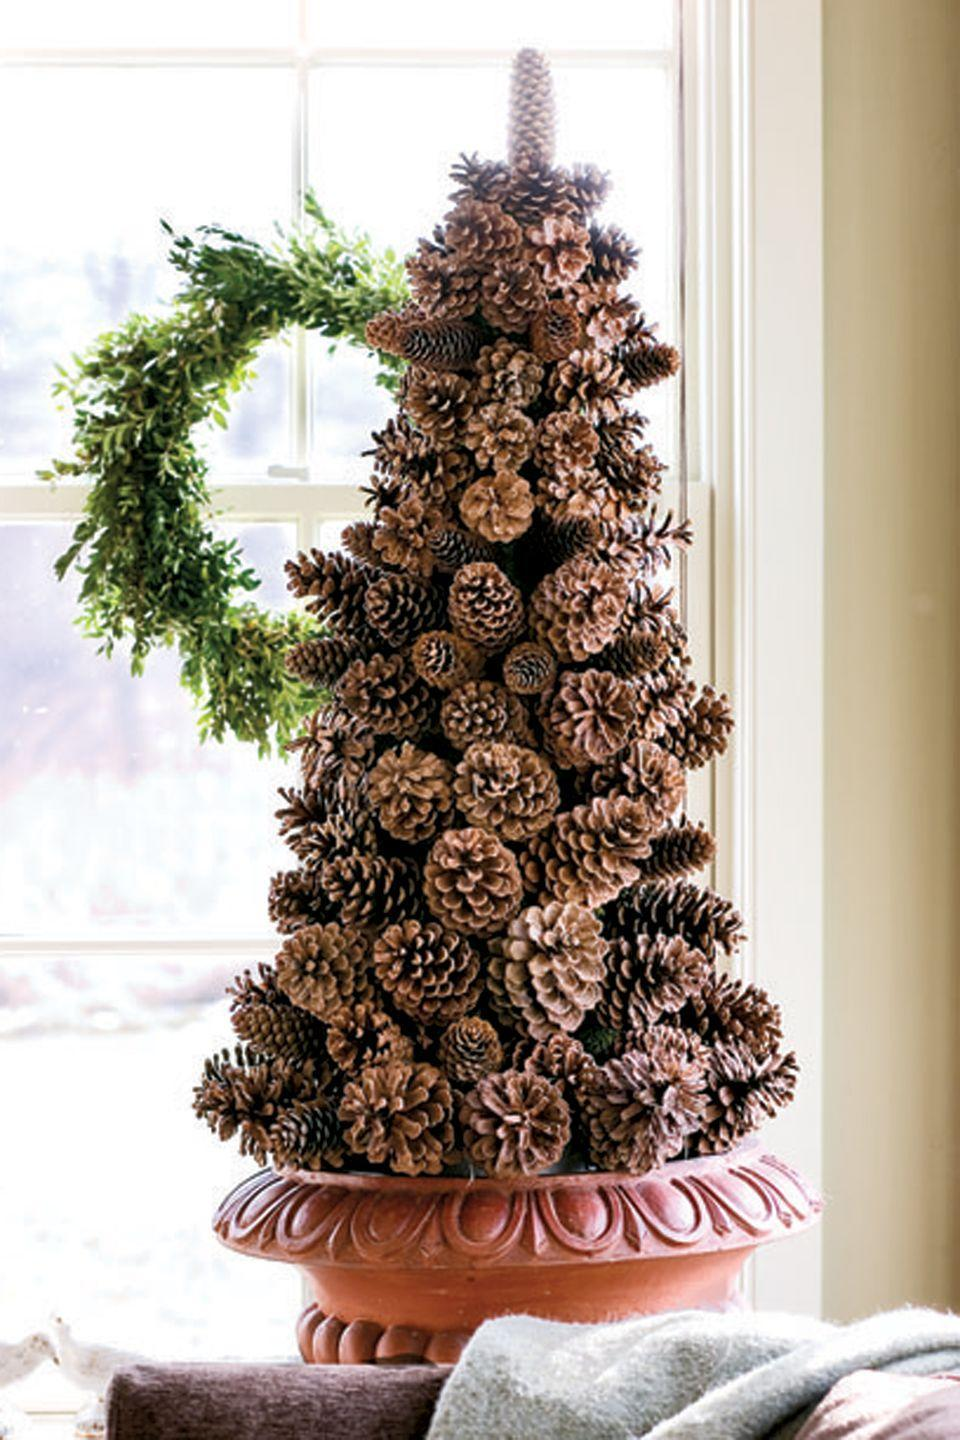 """<p>Create a pinecone tree on a cone-shaped foam base. Anchor the base in a container, then wire the cones onto 2"""" wooden floral picks. Insert picks downward into the foam, starting at the bottom with the largest cones and working to the top with the smaller ones. Conceal the foam by tucking sheet moss among the pinecones.</p><p><a class=""""link rapid-noclick-resp"""" href=""""https://www.amazon.com/s/ref=nb_sb_noss_1?url=search-alias%3Daps&field-keywords=+cone-shaped+foam&rh=i%3Aaps%2Ck%3A+cone-shaped+foam&tag=syn-yahoo-20&ascsubtag=%5Bartid%7C10050.g.1247%5Bsrc%7Cyahoo-us"""" rel=""""nofollow noopener"""" target=""""_blank"""" data-ylk=""""slk:SHOP FOAM CONES"""">SHOP FOAM CONES</a> </p>"""